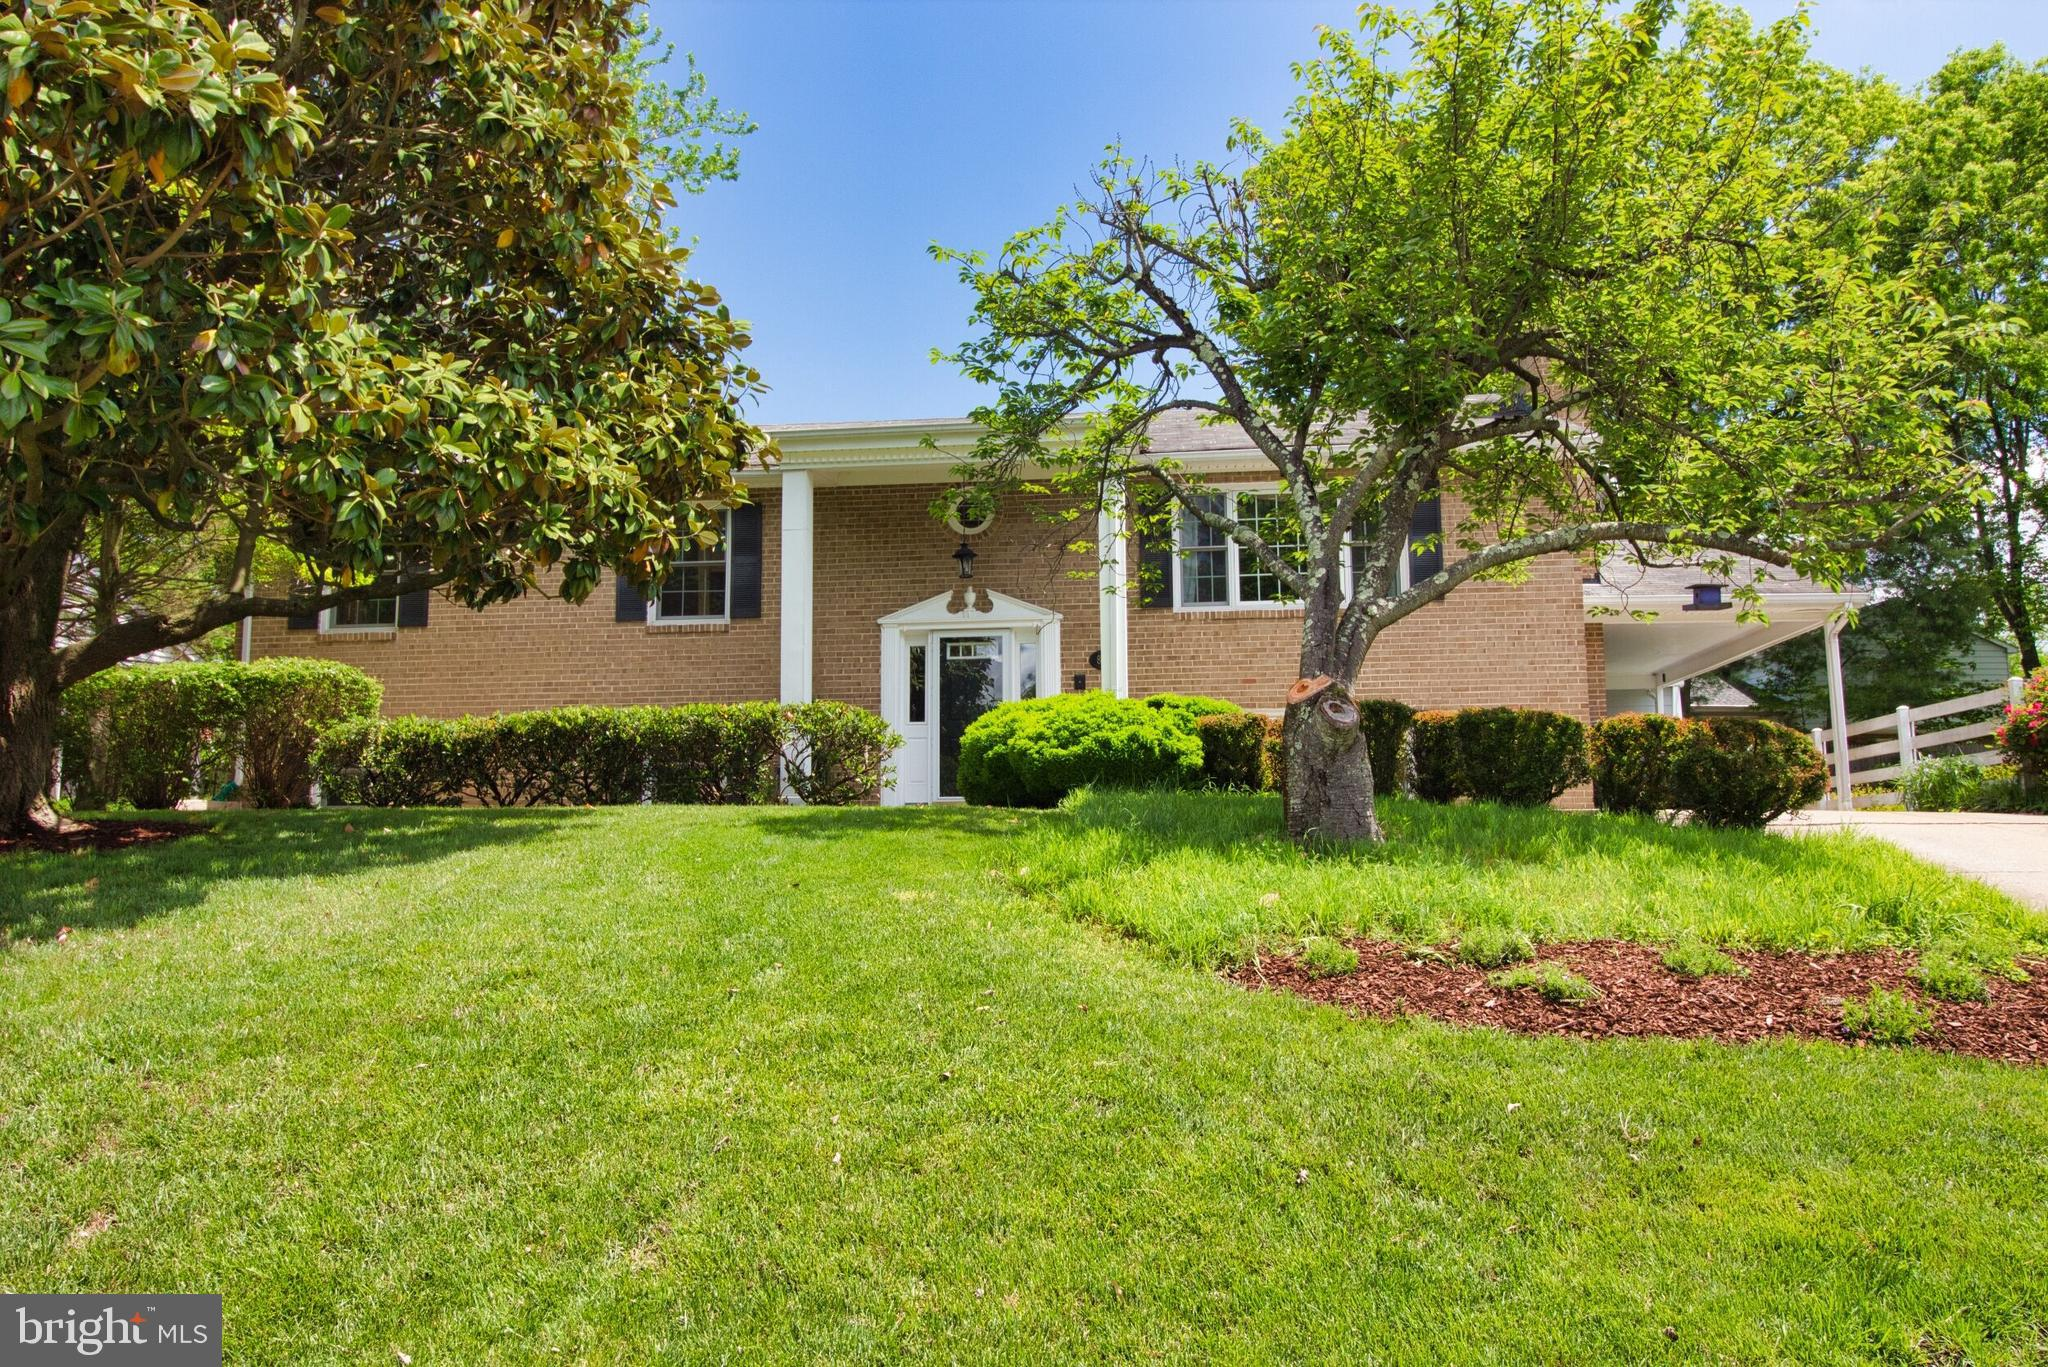 Expanded and gorgeous home in Stratford area of Mt. Vernon, Huge master suite with beautiful luxury bathroom. 5 bedooms total, 3 full baths, hardwoods, large rooms, designer colors and renovations! Gas line brought in for lower level fireplace! Move in and have the summer poolside!